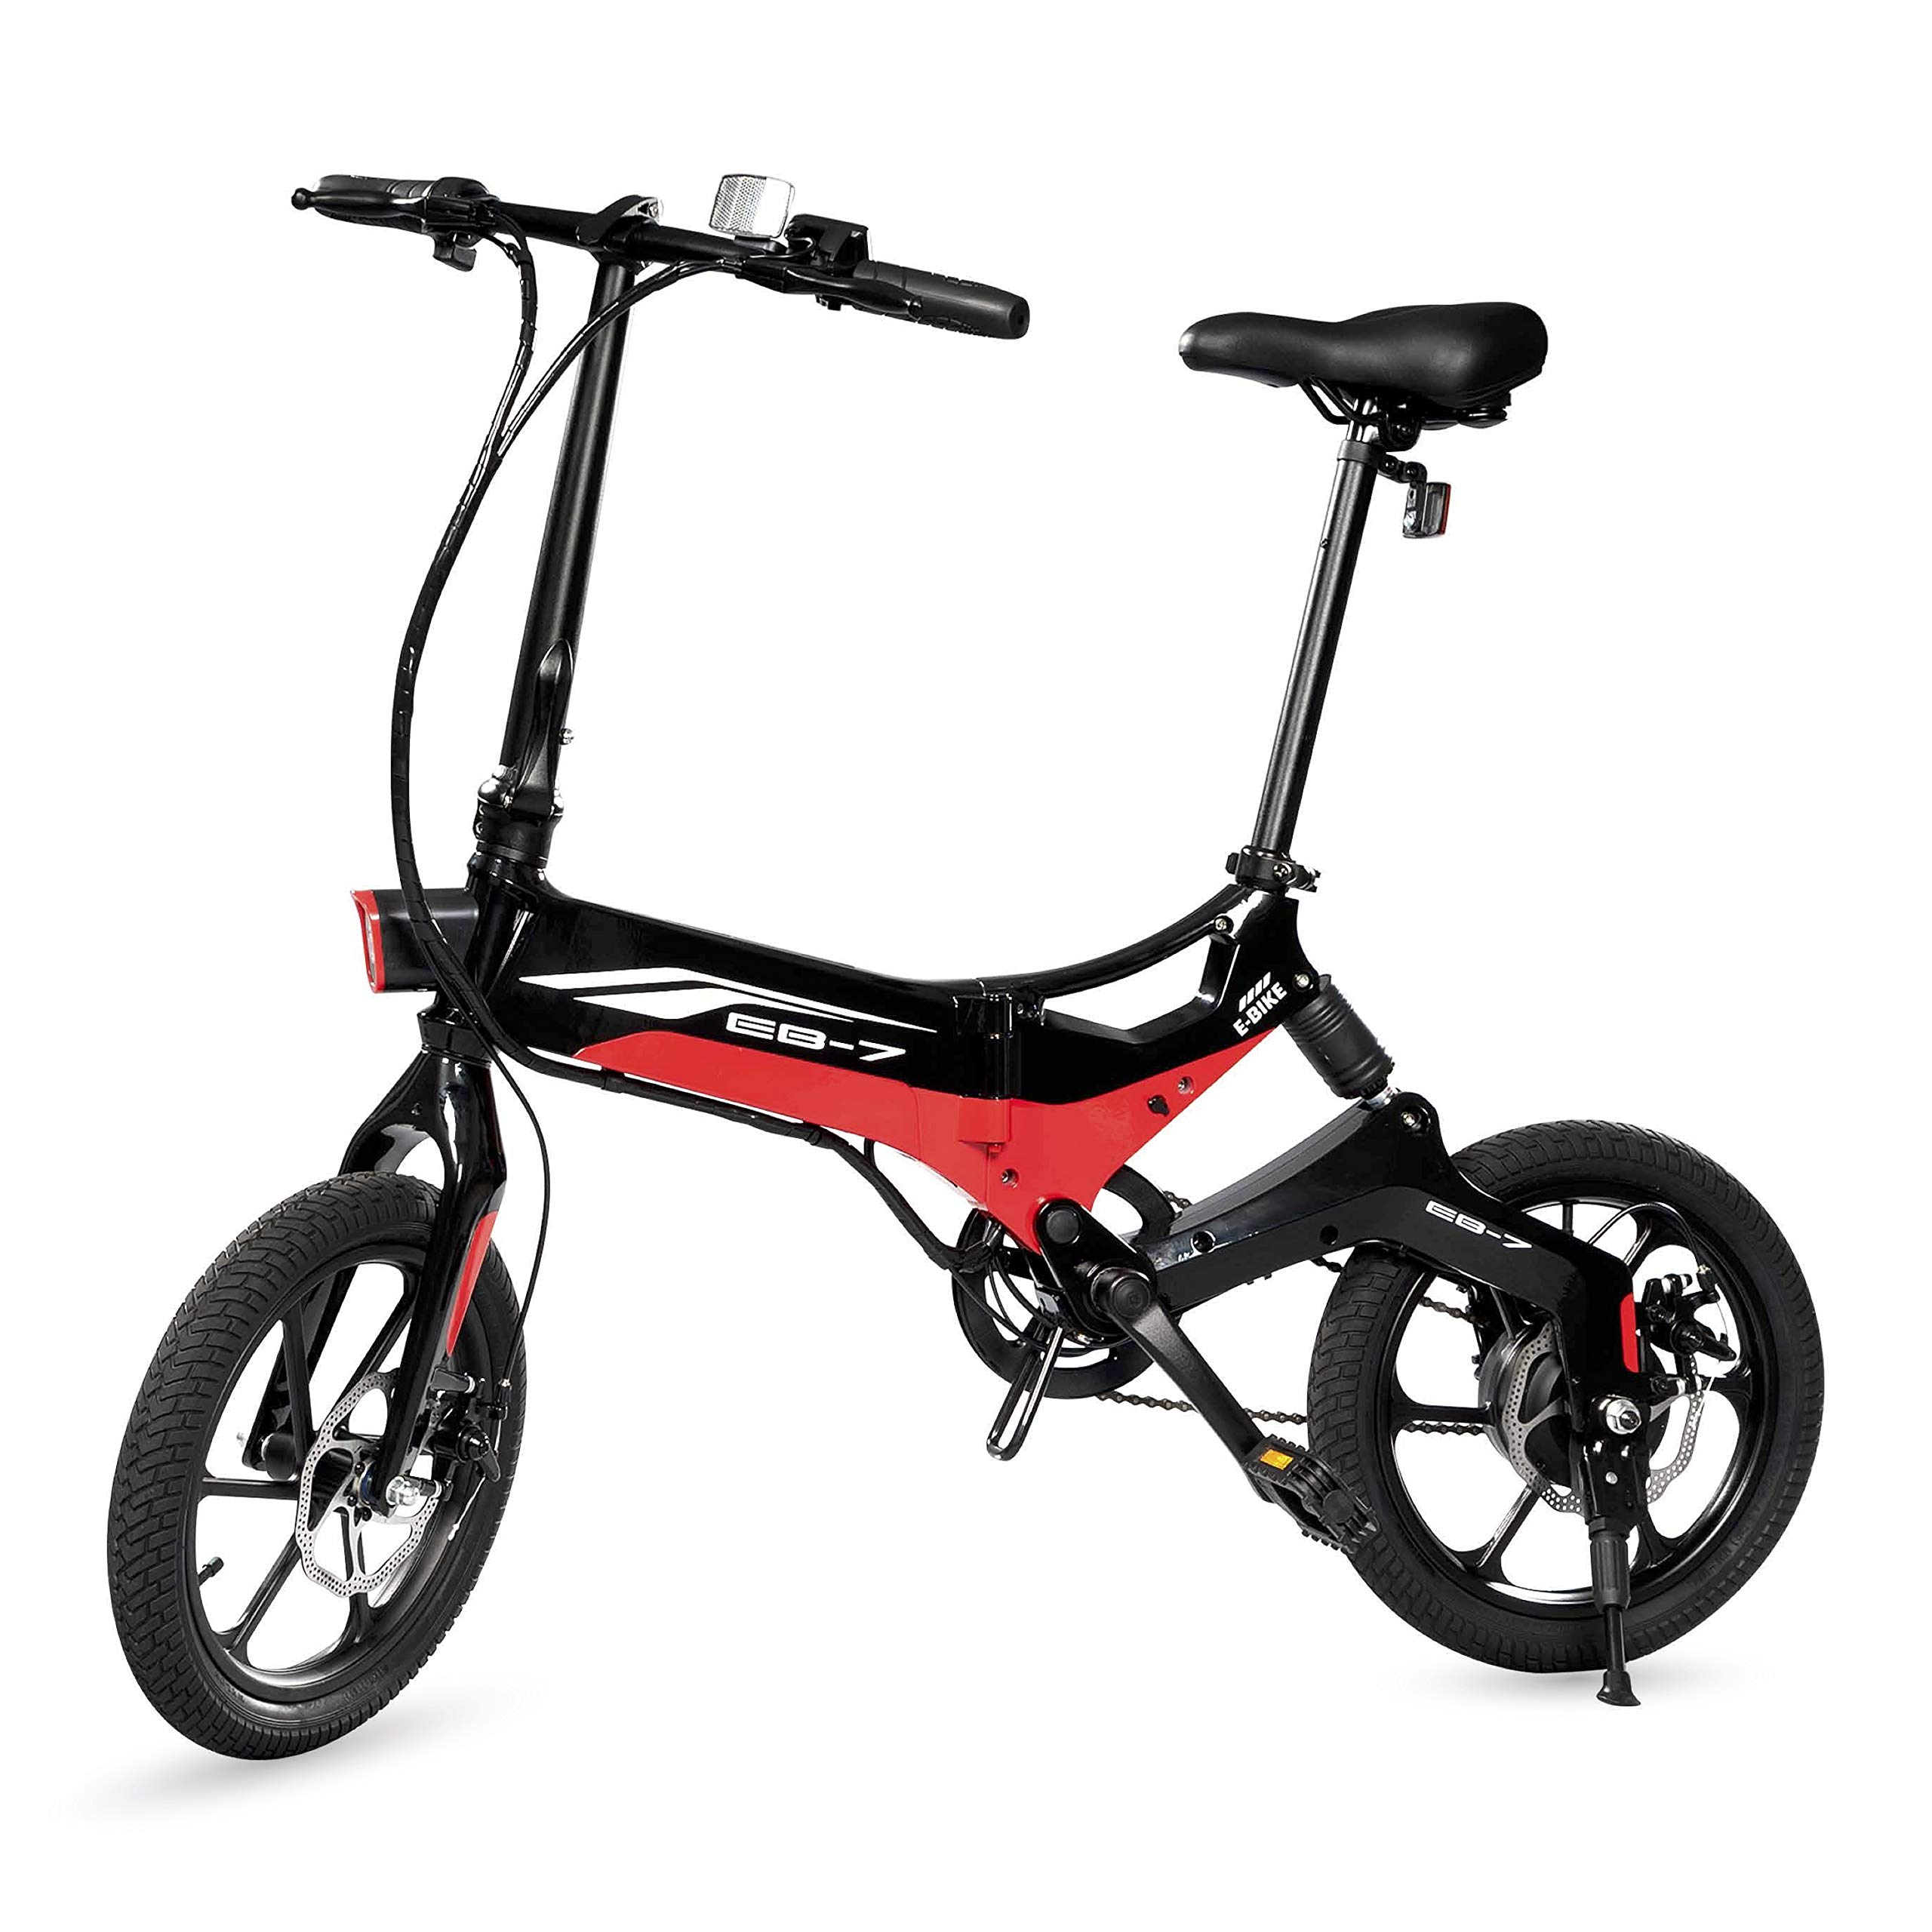 Swagtron Swagcycle EB-7 Elite Folding Electric Bike, 16-Inch Wheels, Swappable Battery with Keylock & Rear Suspension (Black) by Swagtron